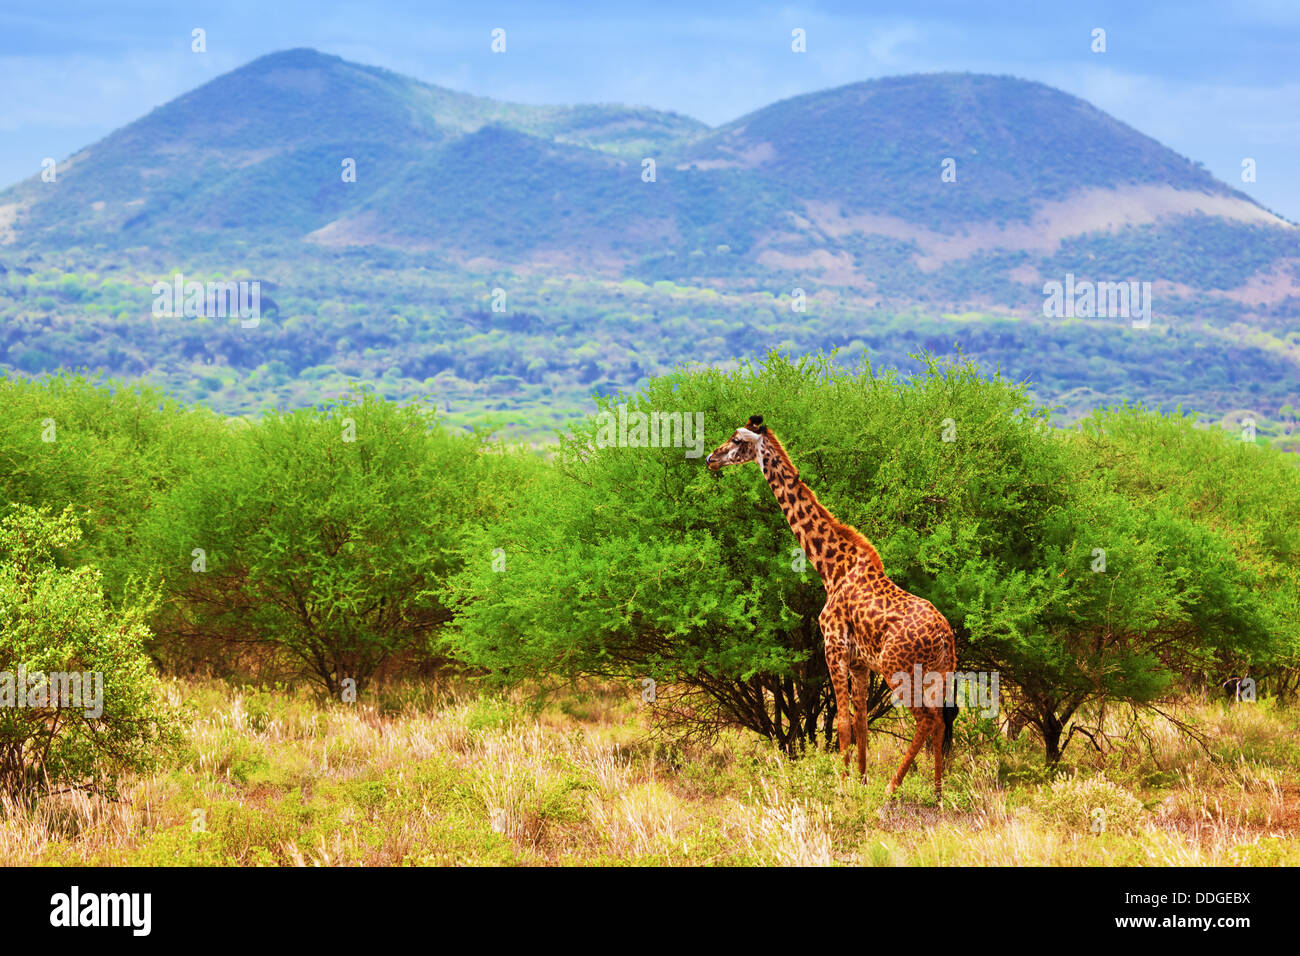 Girafe à Tsavo West National Park, Kenya, Afrique - faune Africaine Photo Stock